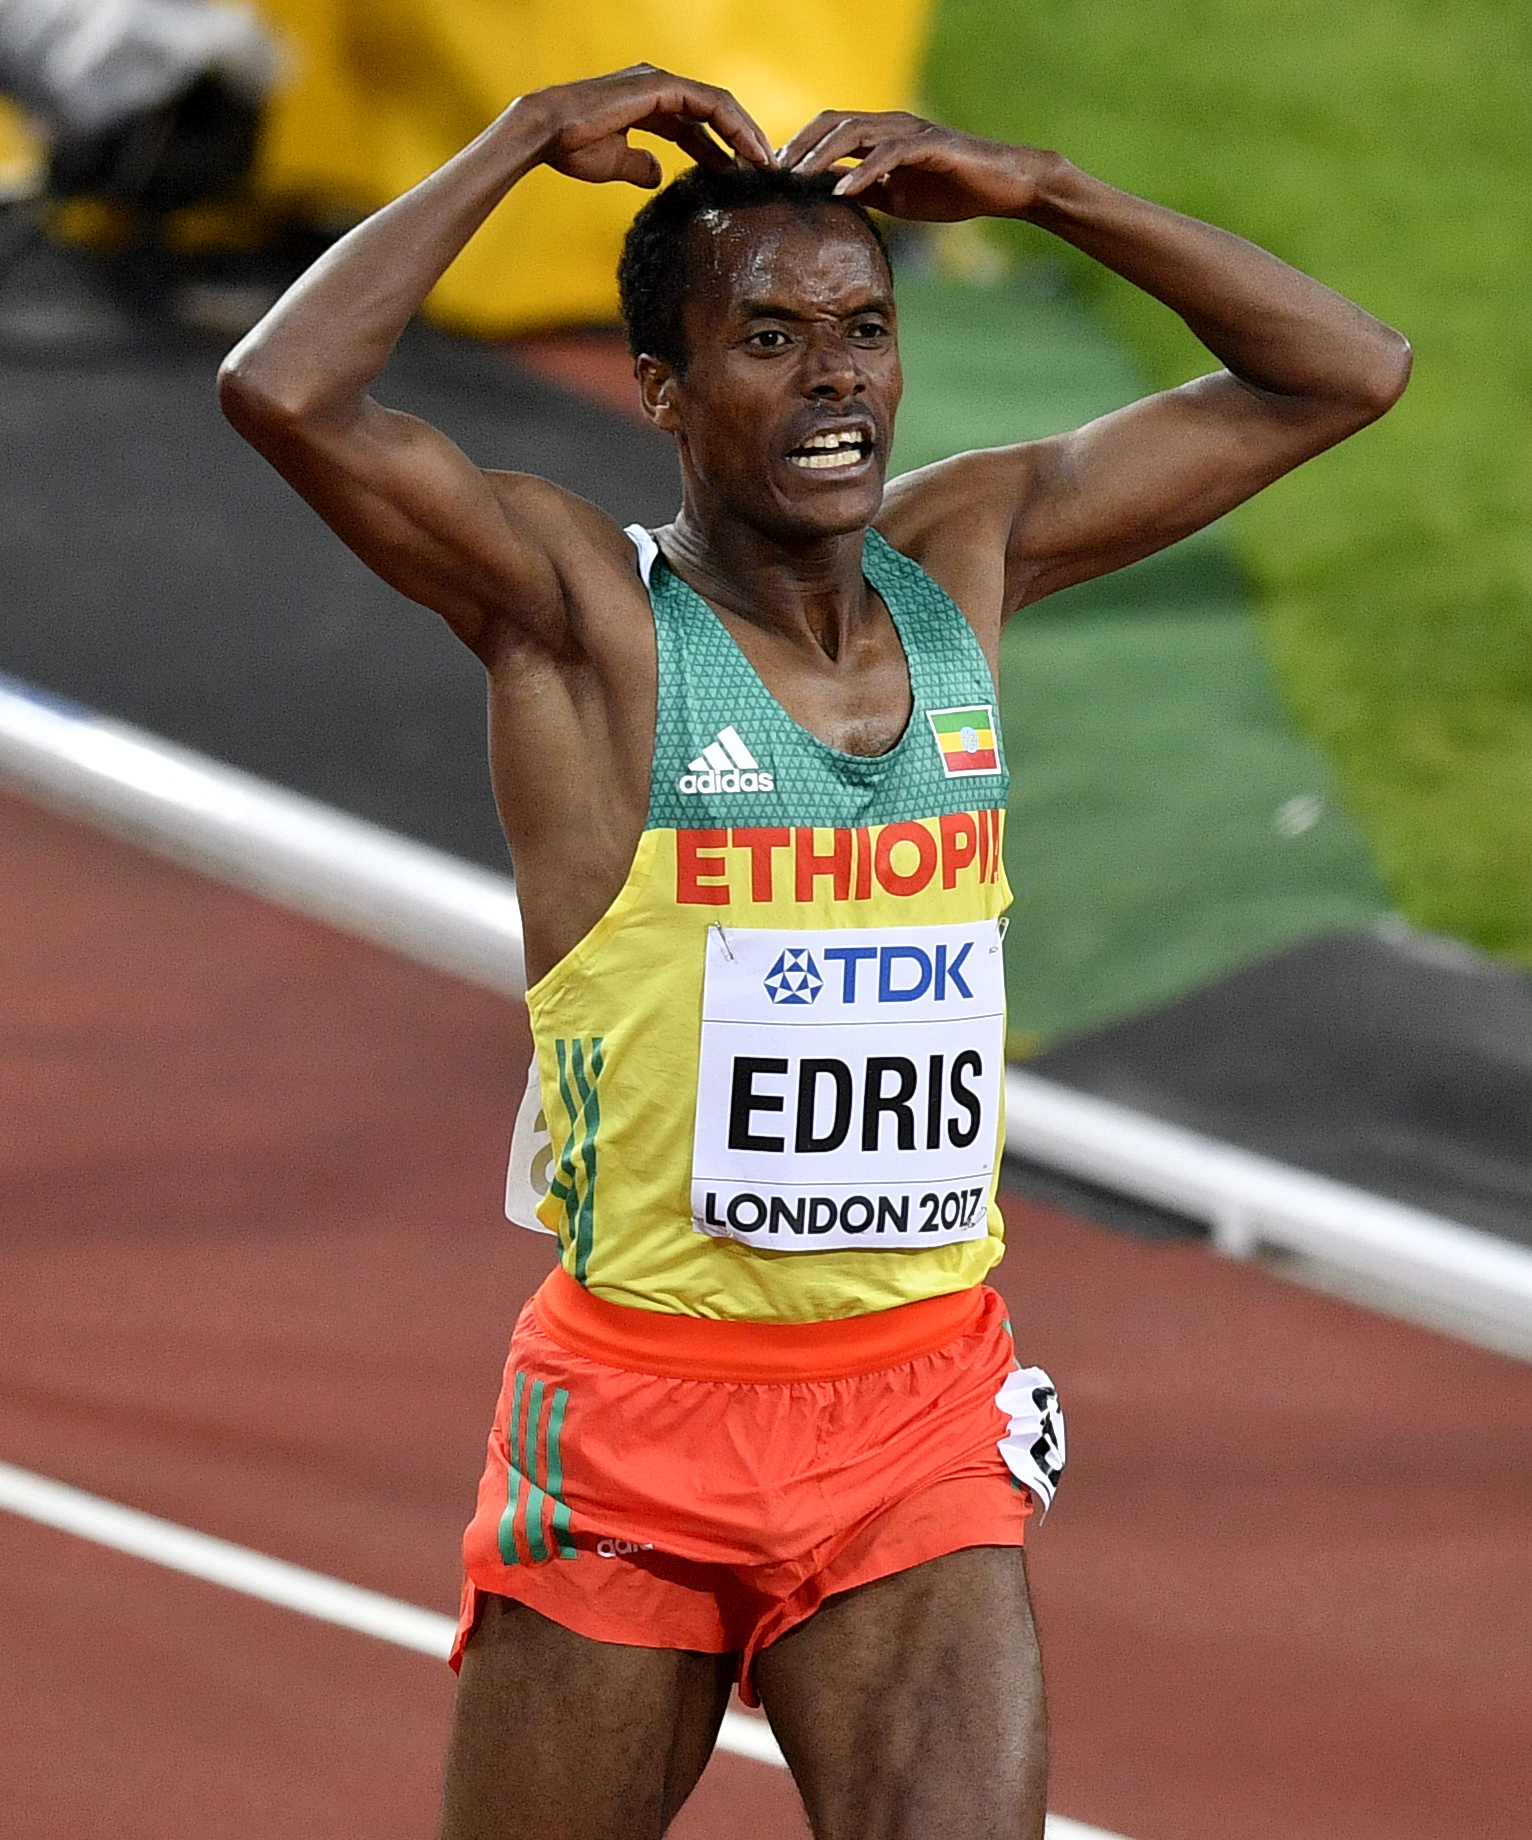 Ethiopia's Muktar Edris celebrates after winning the Men's 5000 meters final at the World Athletics Championships in London Saturday, Aug. 12, 2017. (AP Photo/Martin Meissner)